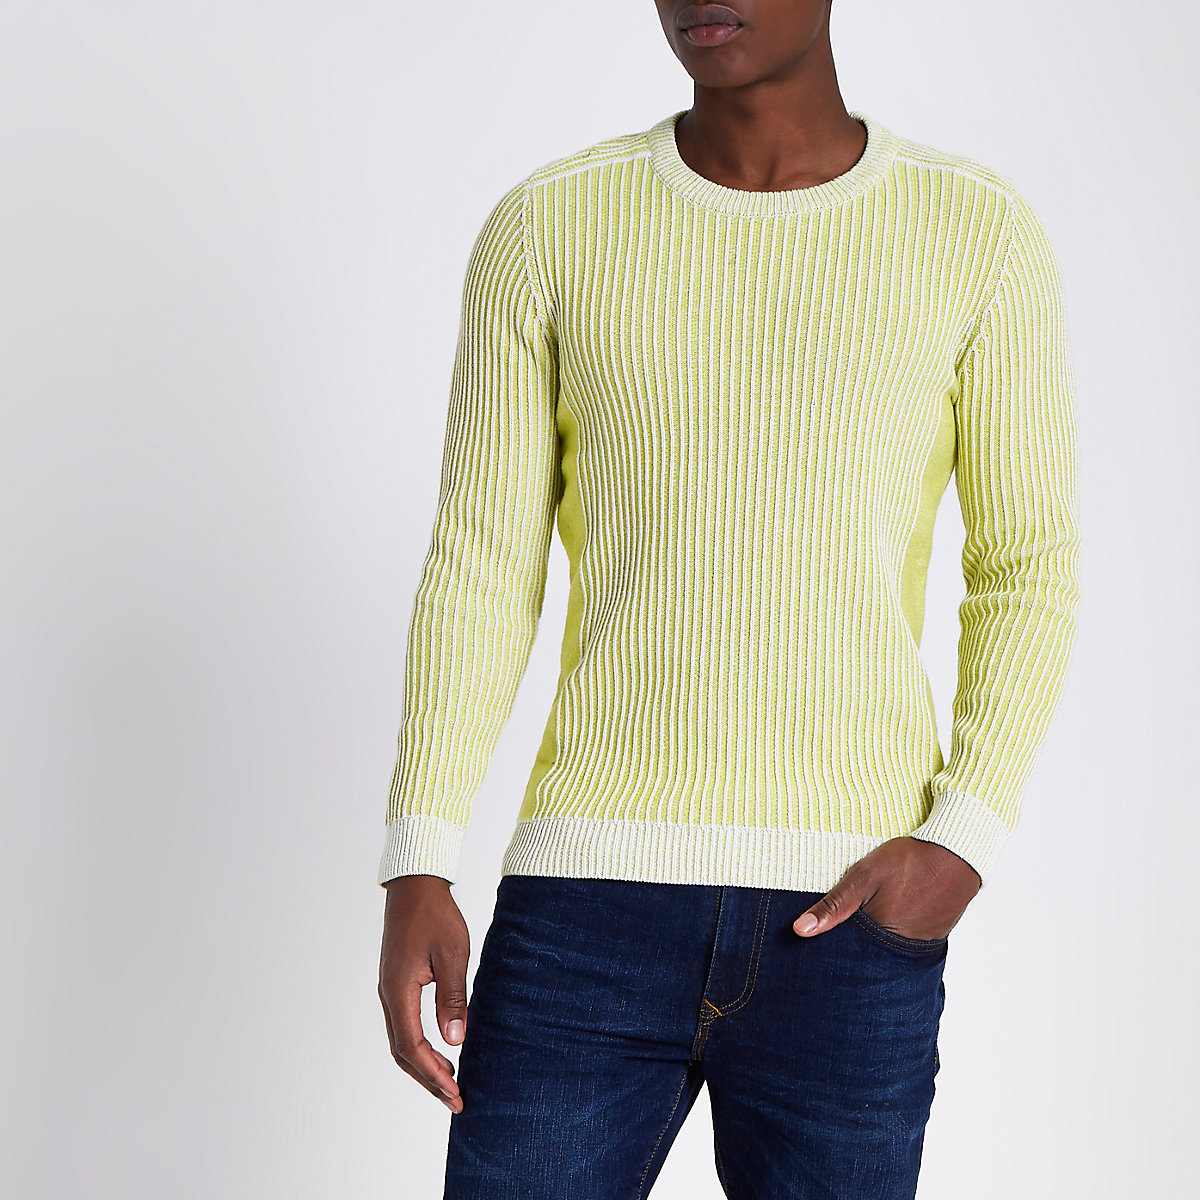 Yellow rib knit muscle fit sweater